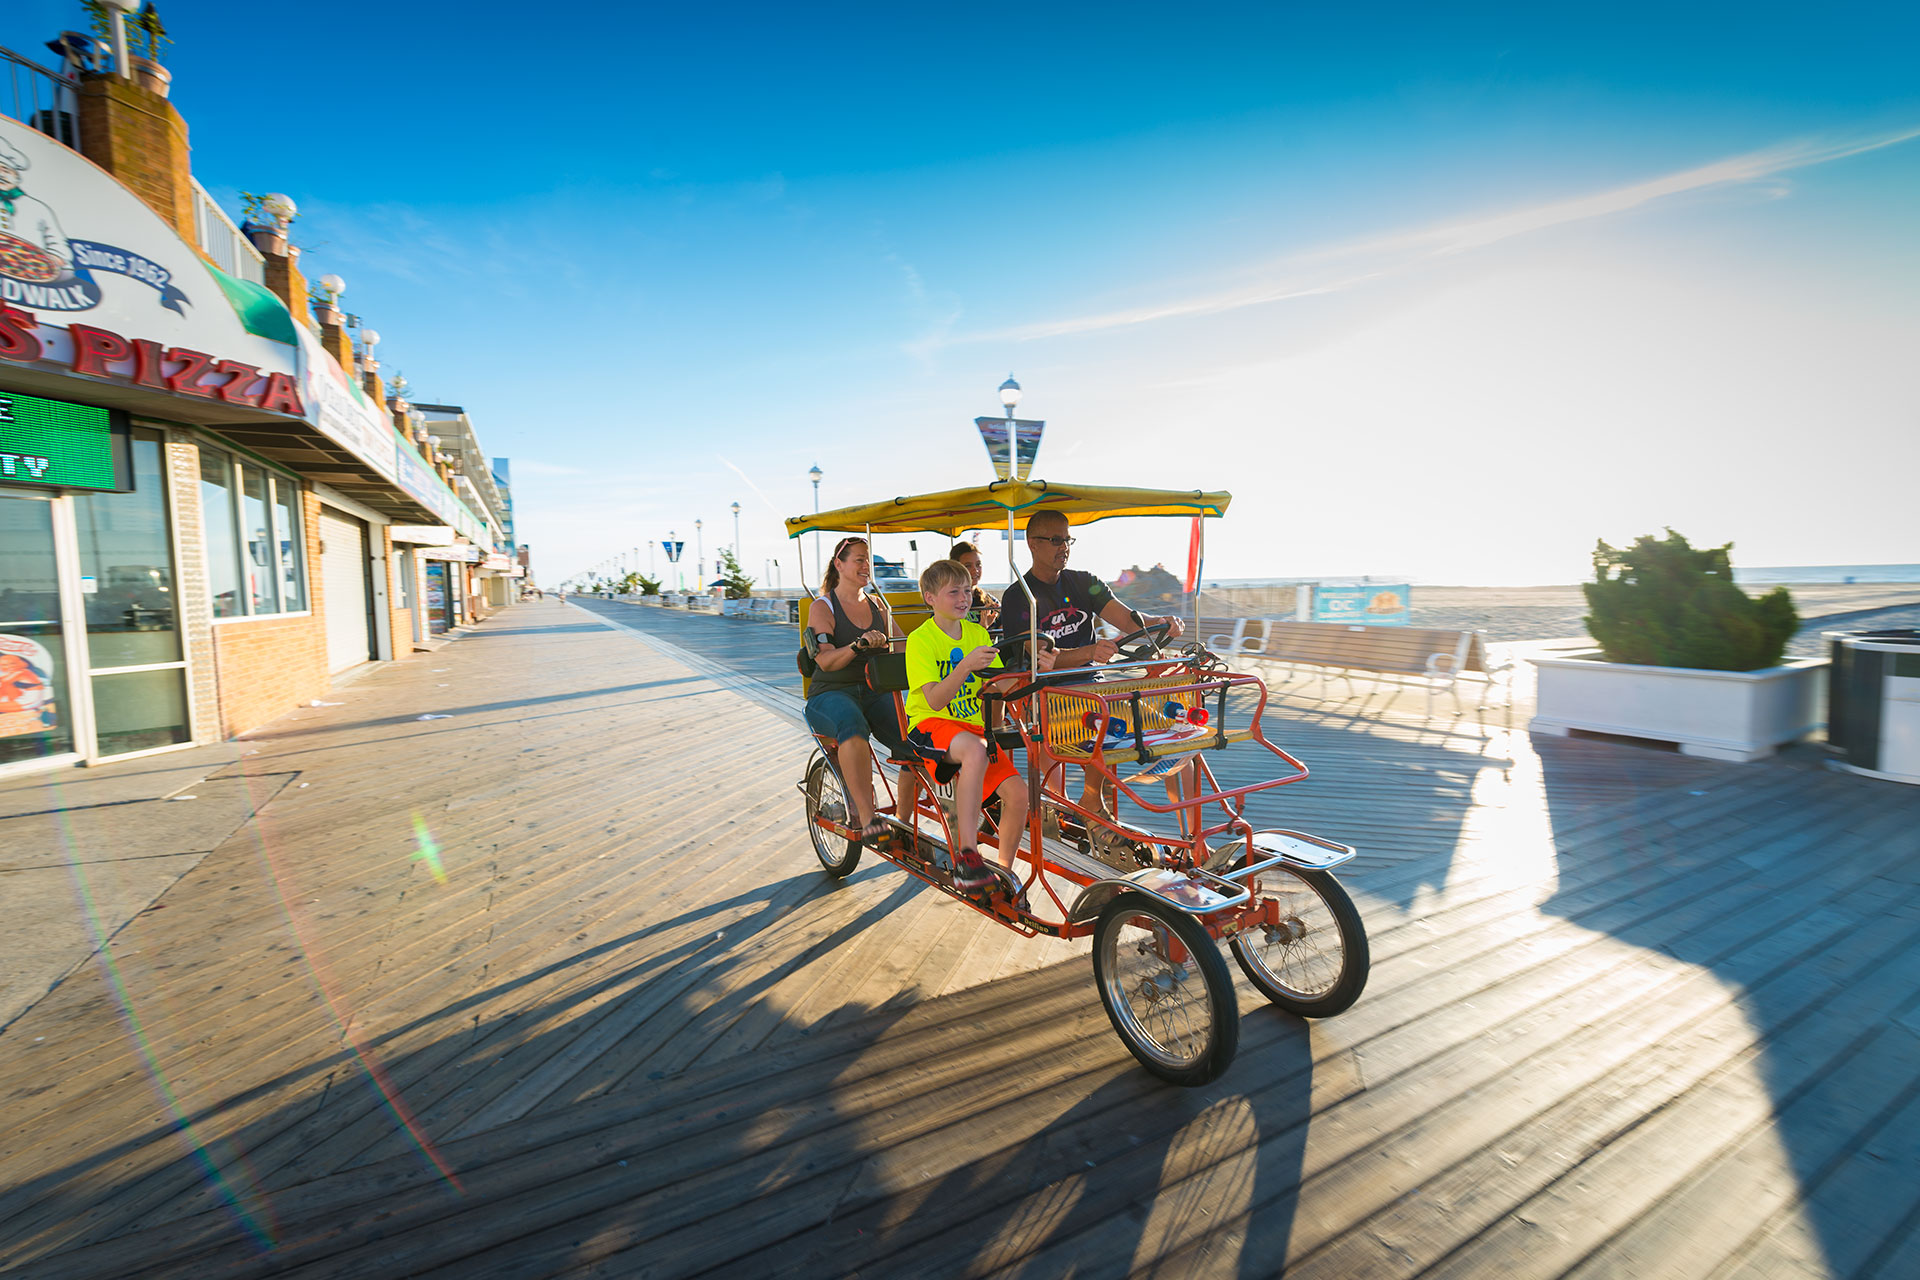 Family on Surry Ride in Ocean City, Maryland